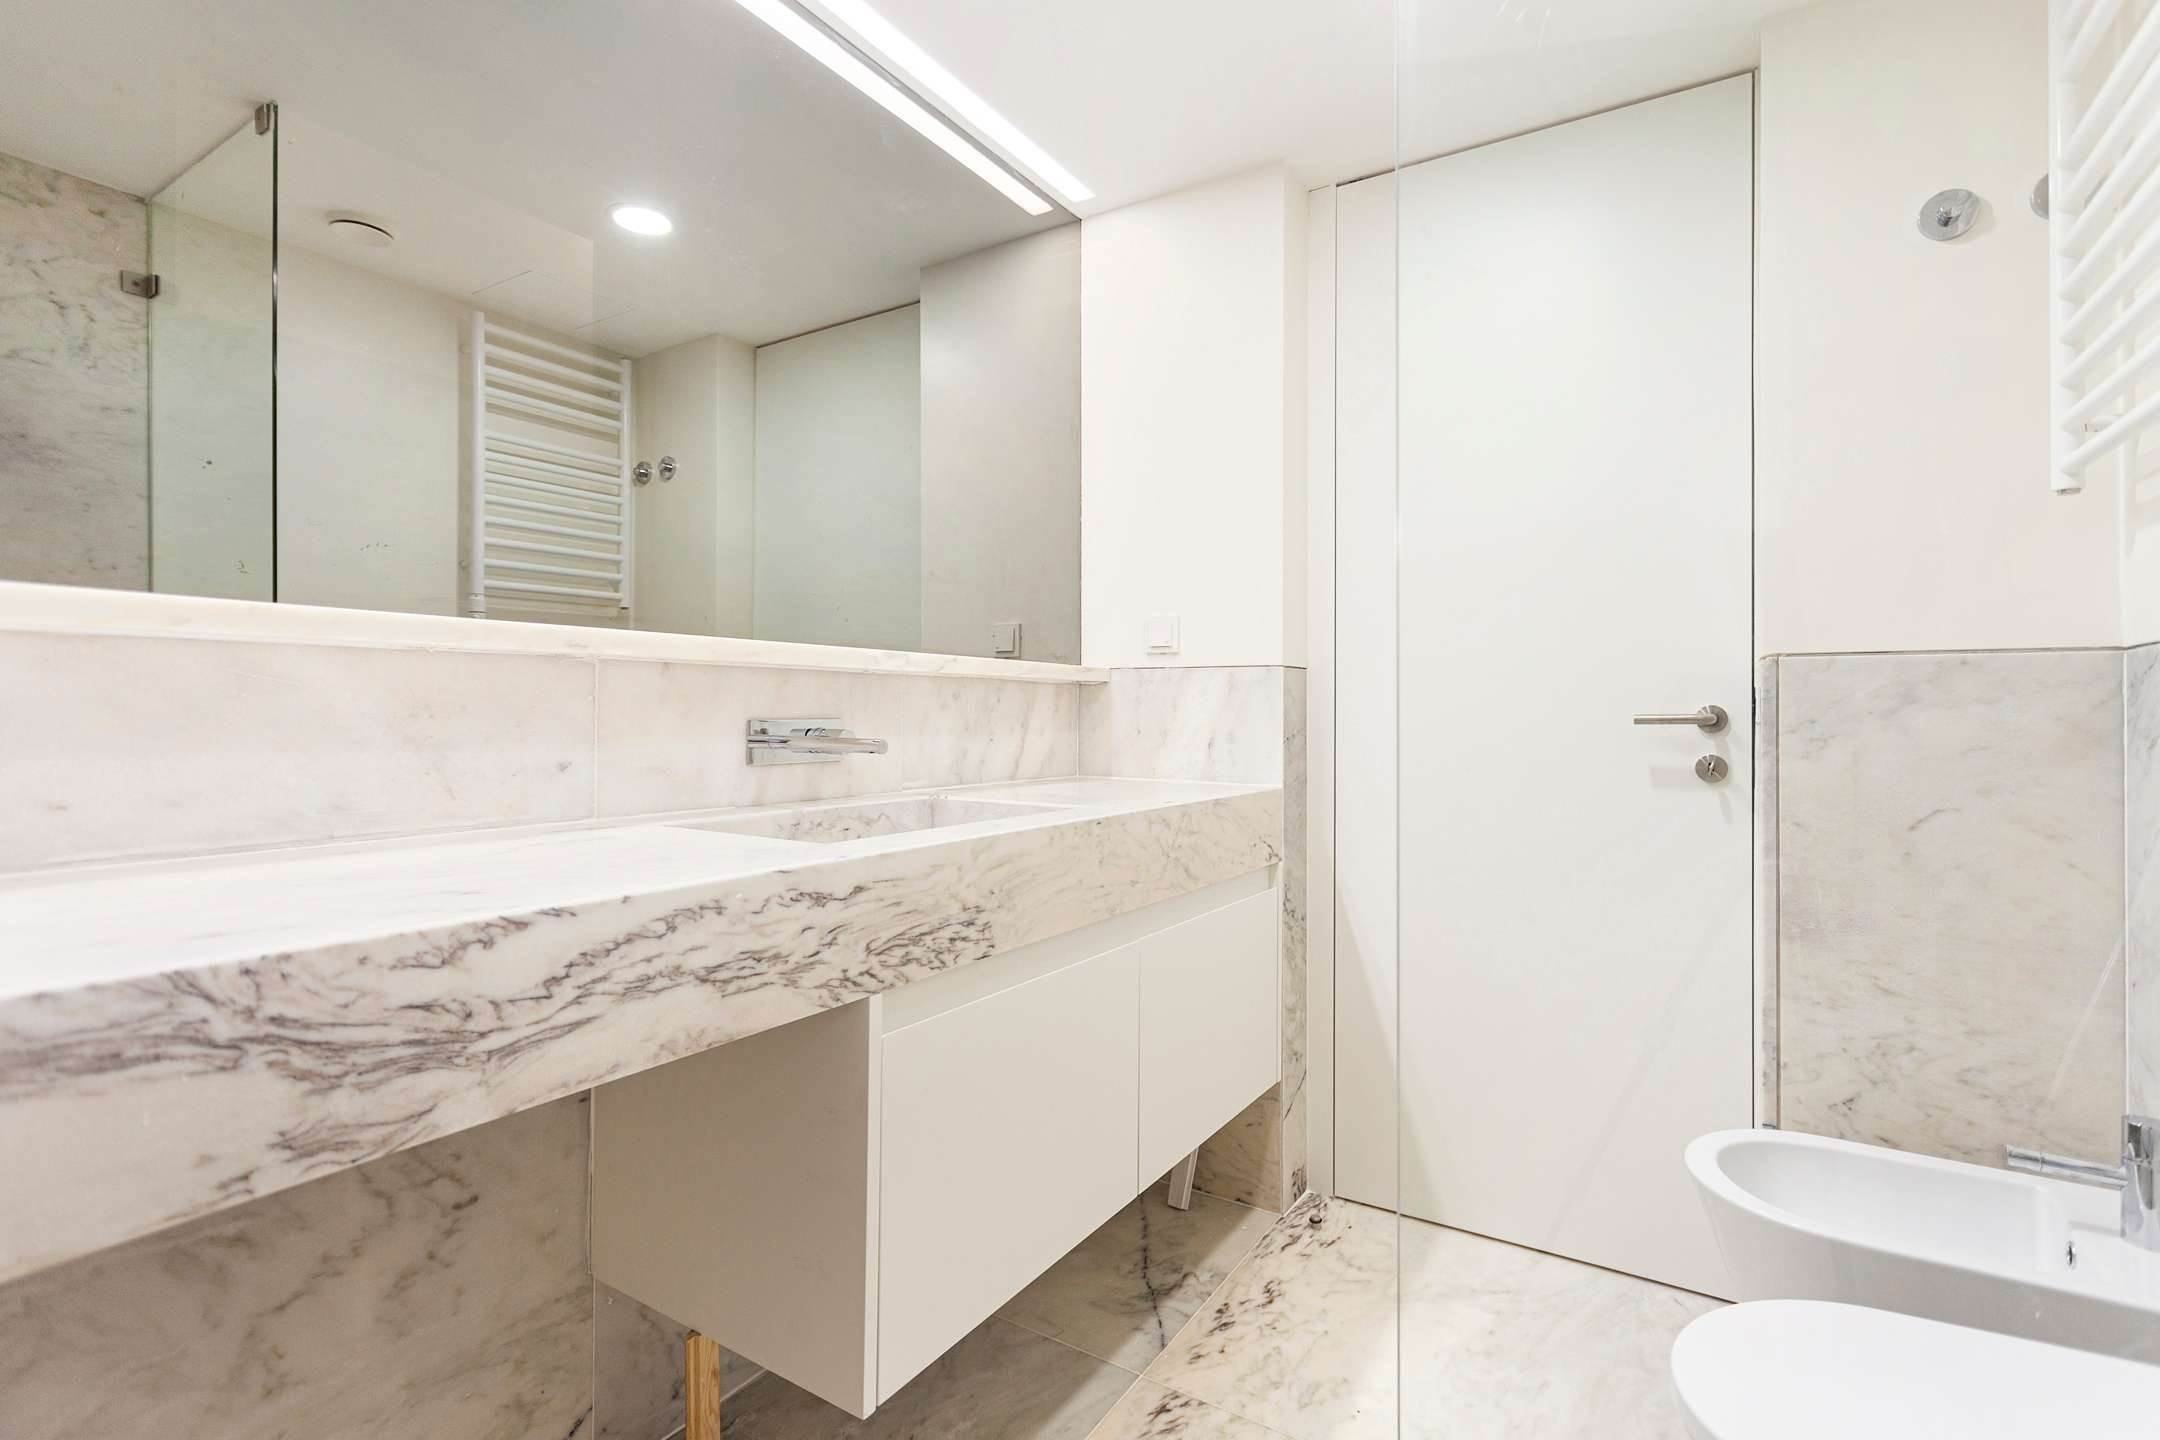 19. Apartamentos para Venda às 2 bedroom apartment, new and ready to debut, close to the most prestigious and sought after avenue of Lisbon.With an 87 ... Lisboa, Portugal